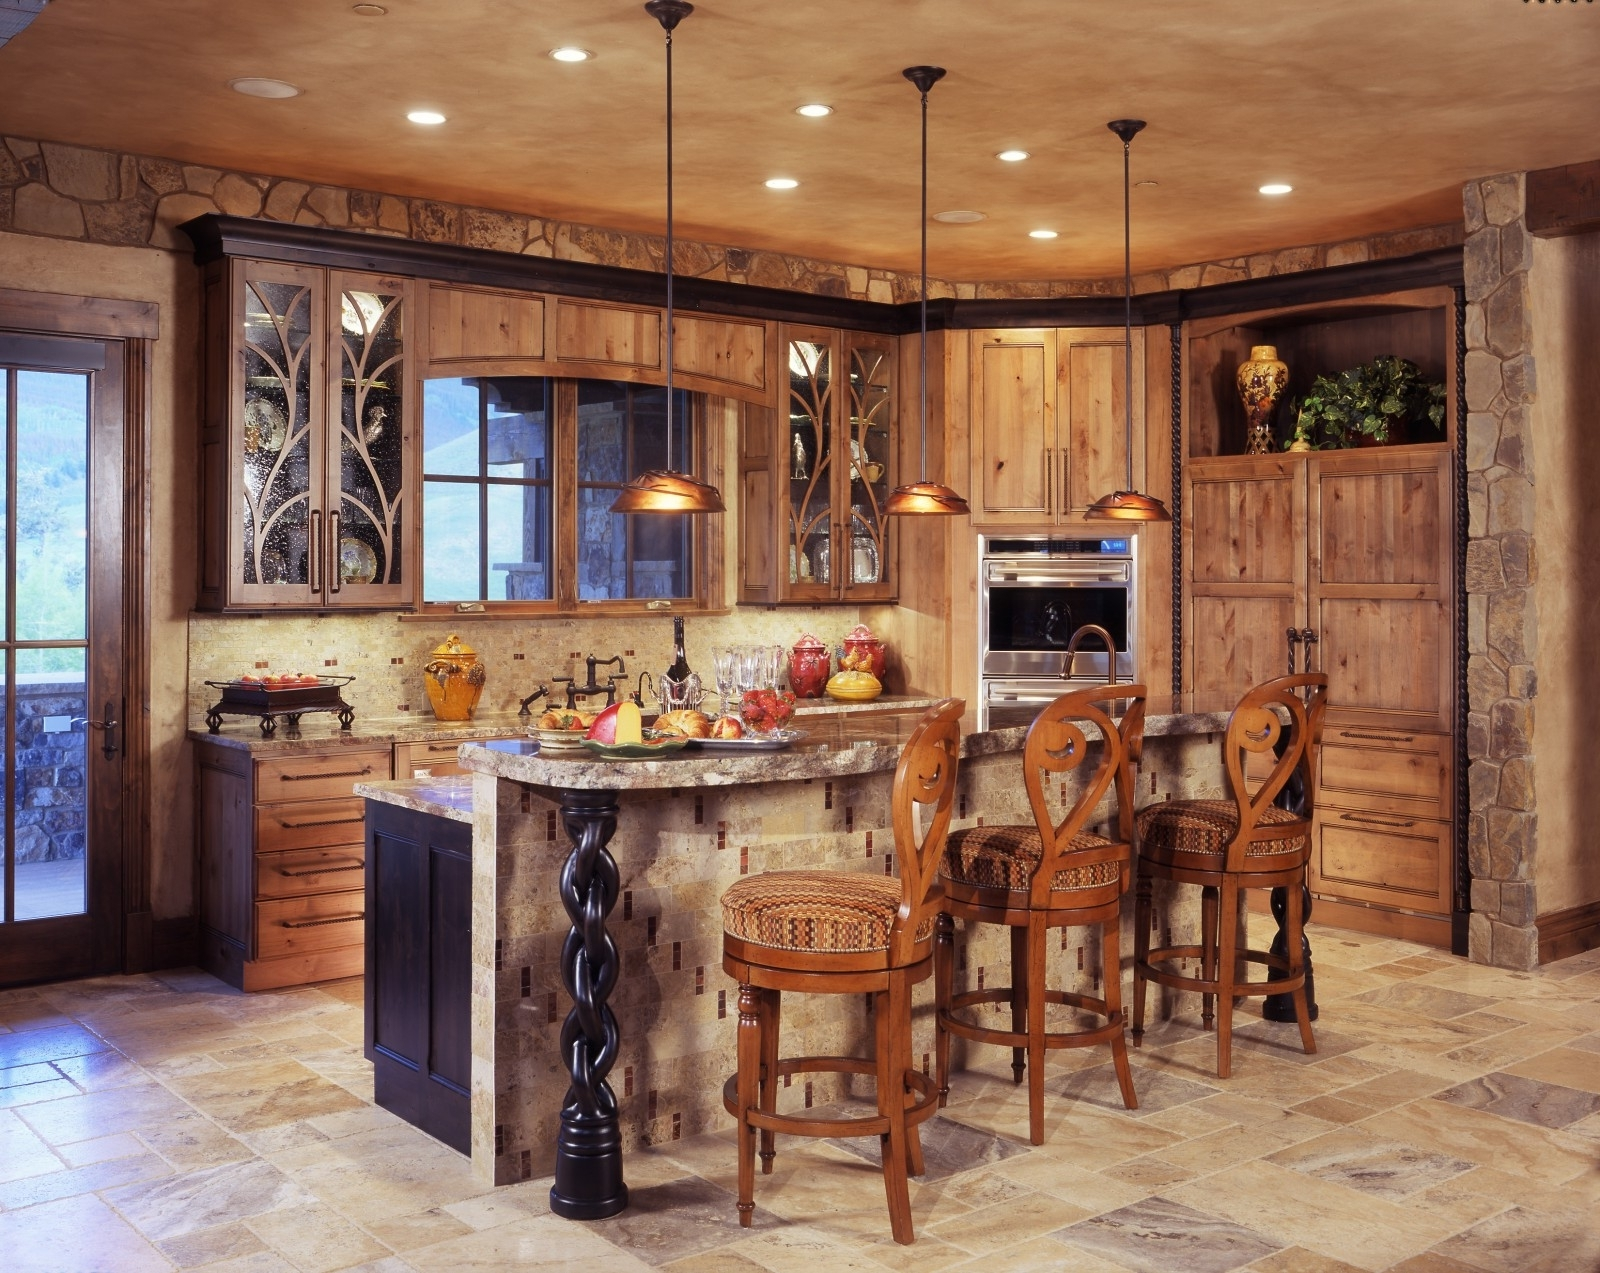 2019 Small Rustic Kitchen Chandeliers Throughout Rustic Kitchen Lighting Ideas – Kitchen Ideas, Rustic Kitchen (View 1 of 20)